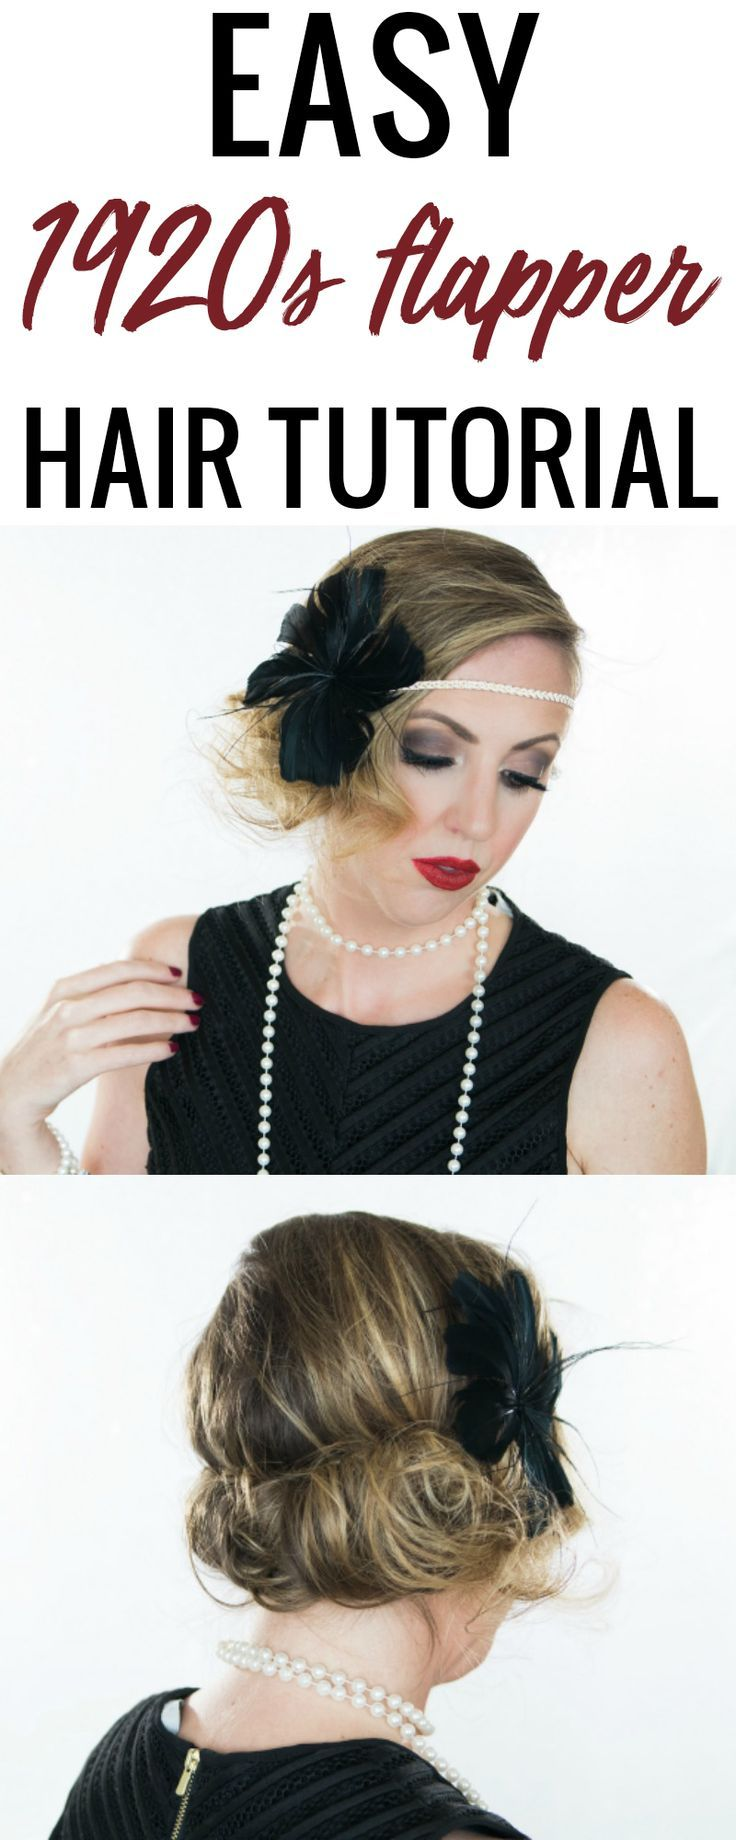 This 1920s flapper hair tutorial is SO easy! #halloweenhairtutorial #hairtutorial #flappergirlhair